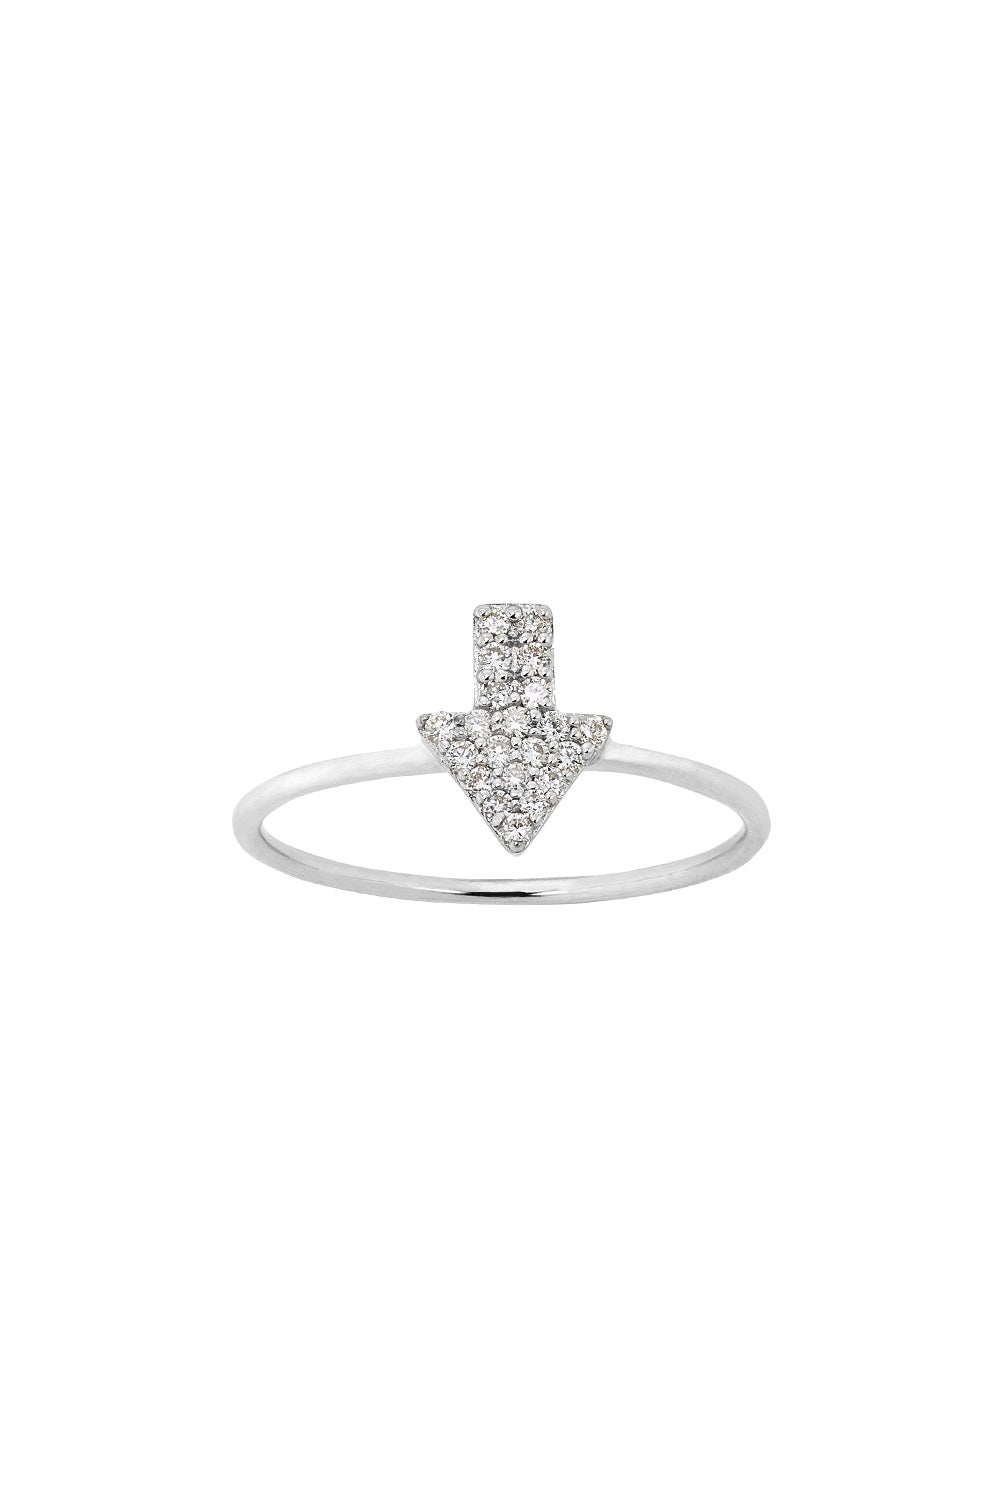 Diamond Superfine Arrow Ring, 9ct White Gold, .13ct Diamond